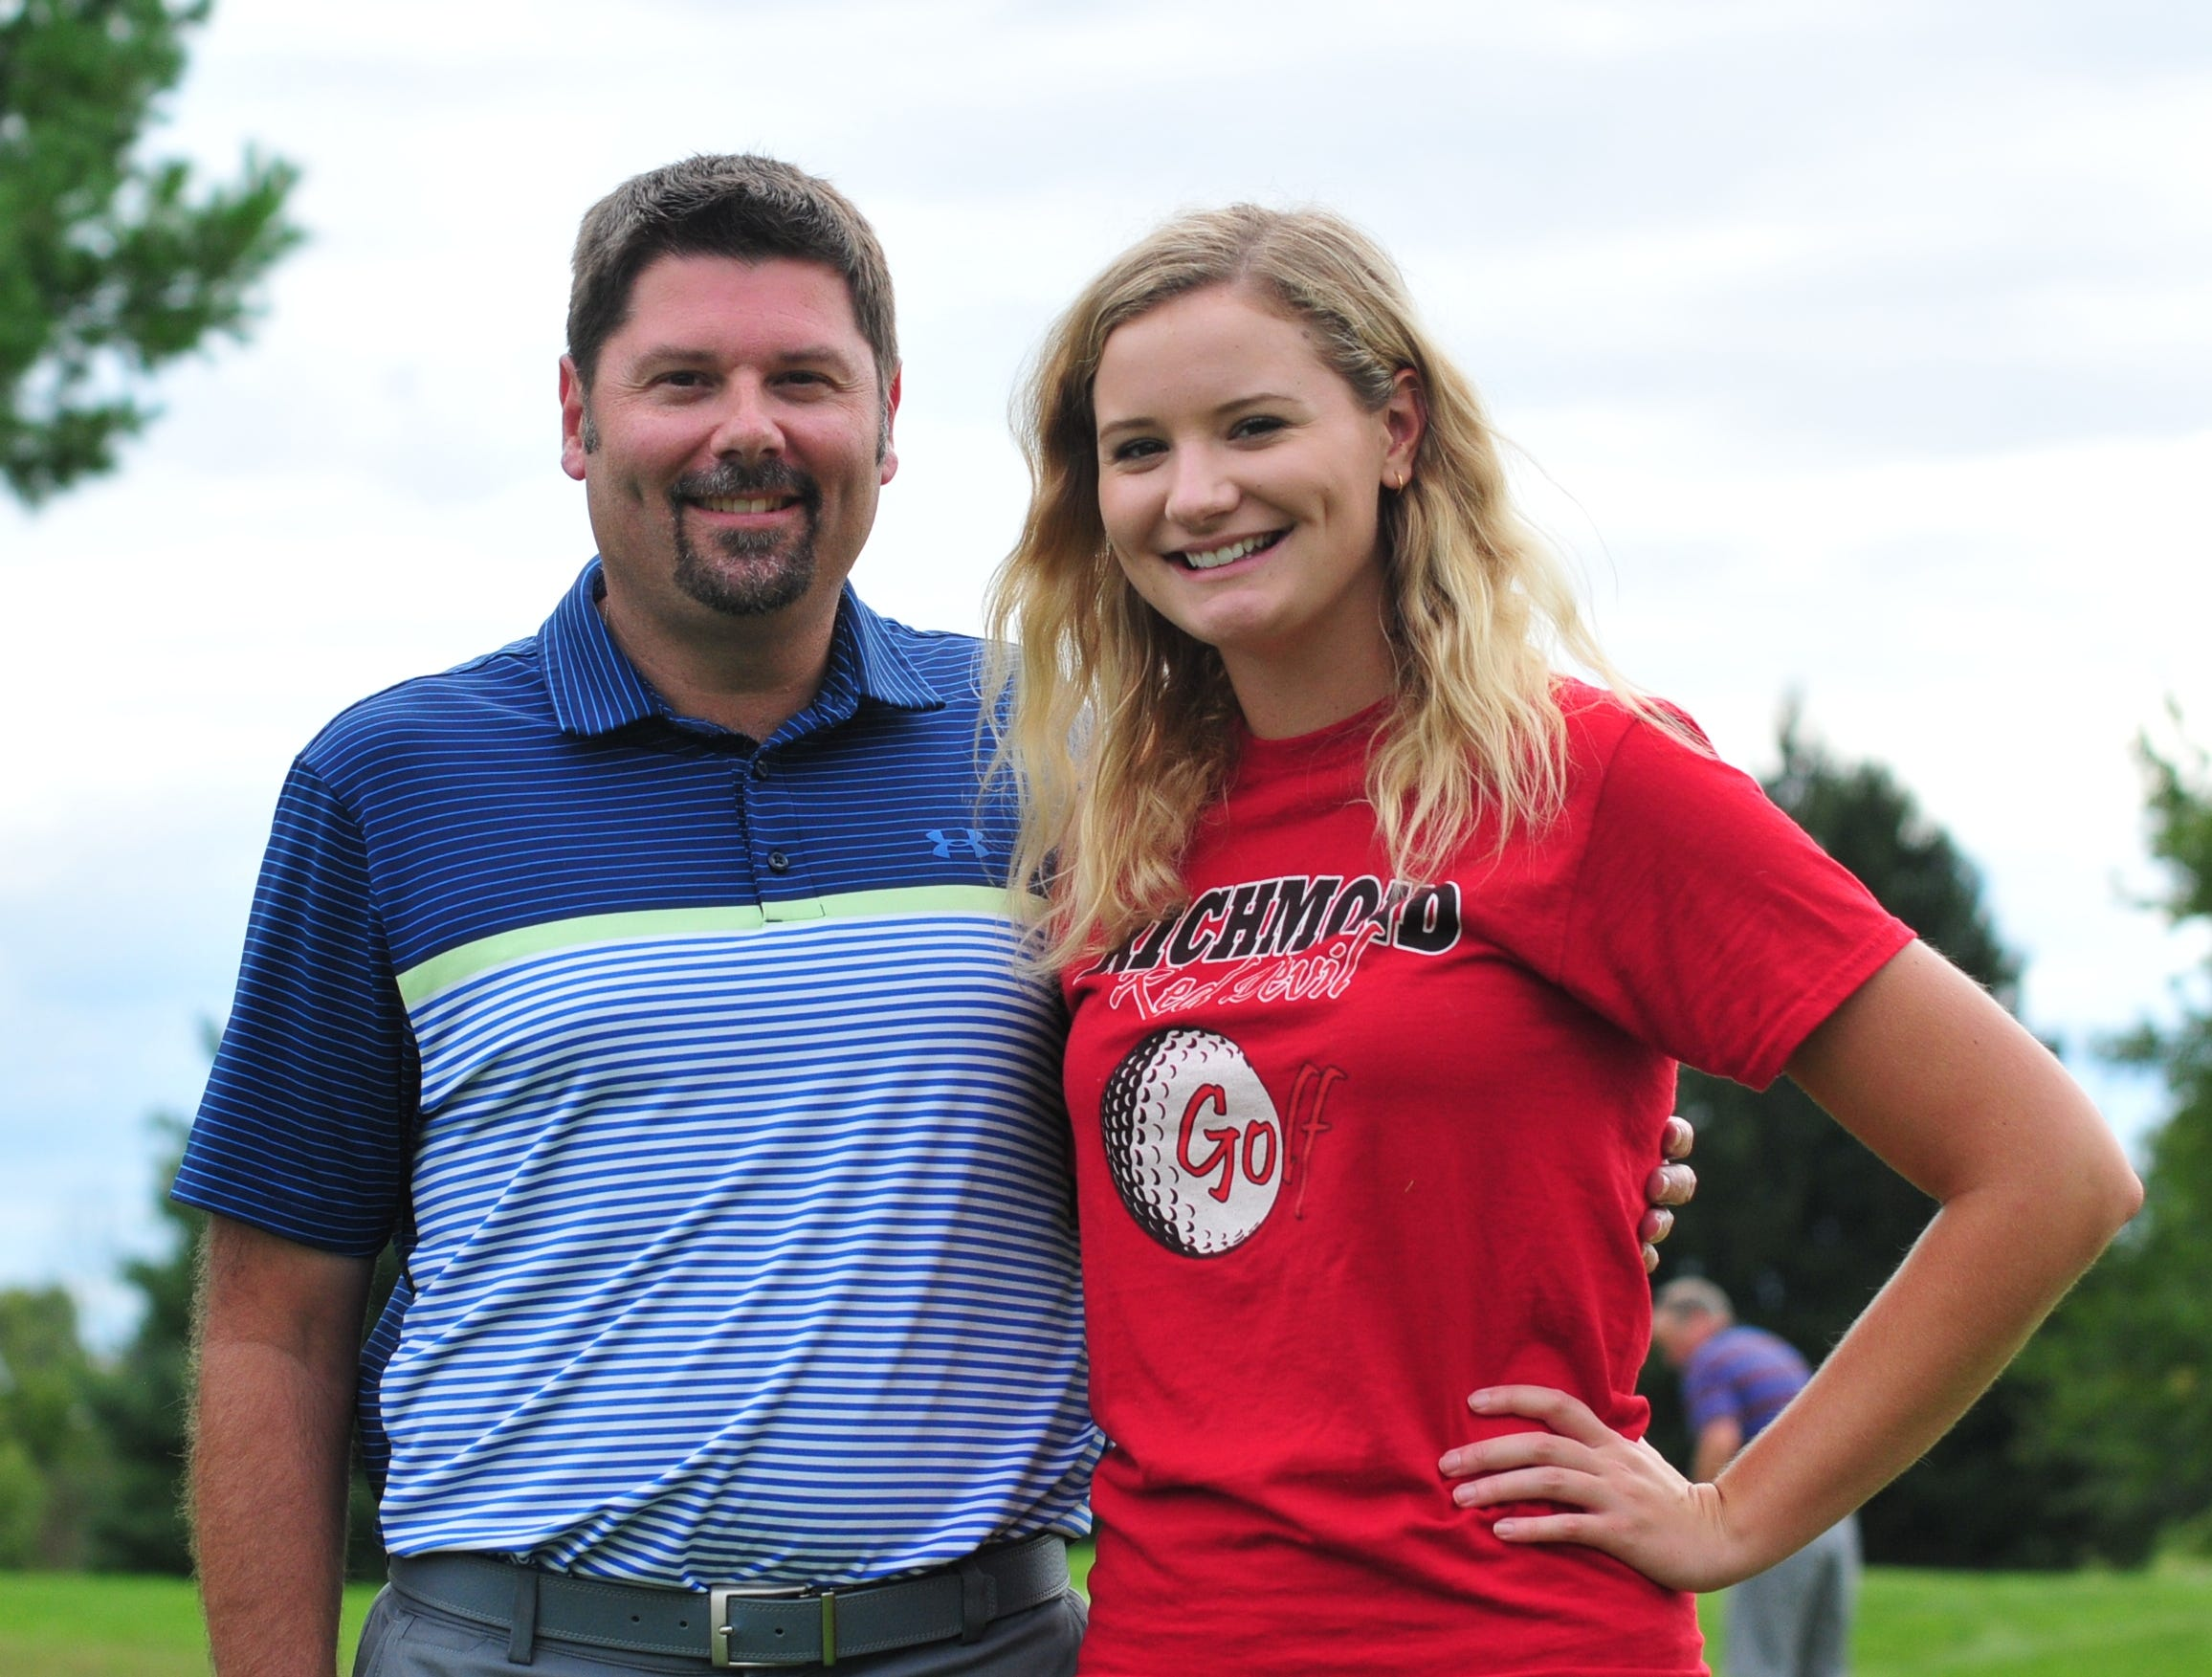 J. J. Cornett, left, was a member of Richmond High School's 1993 boys golf team. His daughter Jacey, right, is currently a senior at Richmond, aiming to lead the Red Devils back to state.